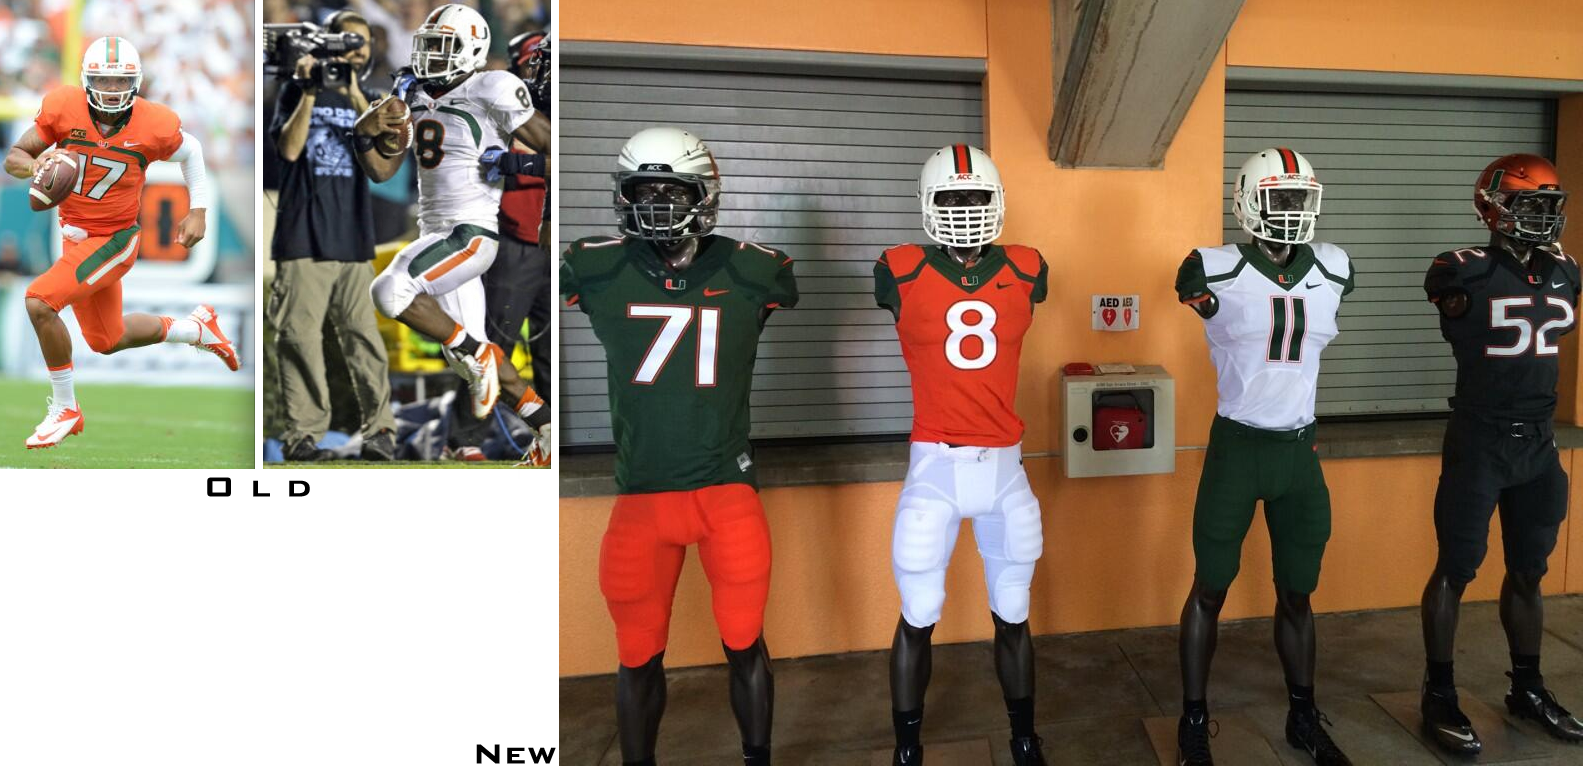 c084215bc The Hurricanes also have new green and orange helmet options. You can see  the new uni elements in a wide range of mix-and-match formats by clicking  through ...